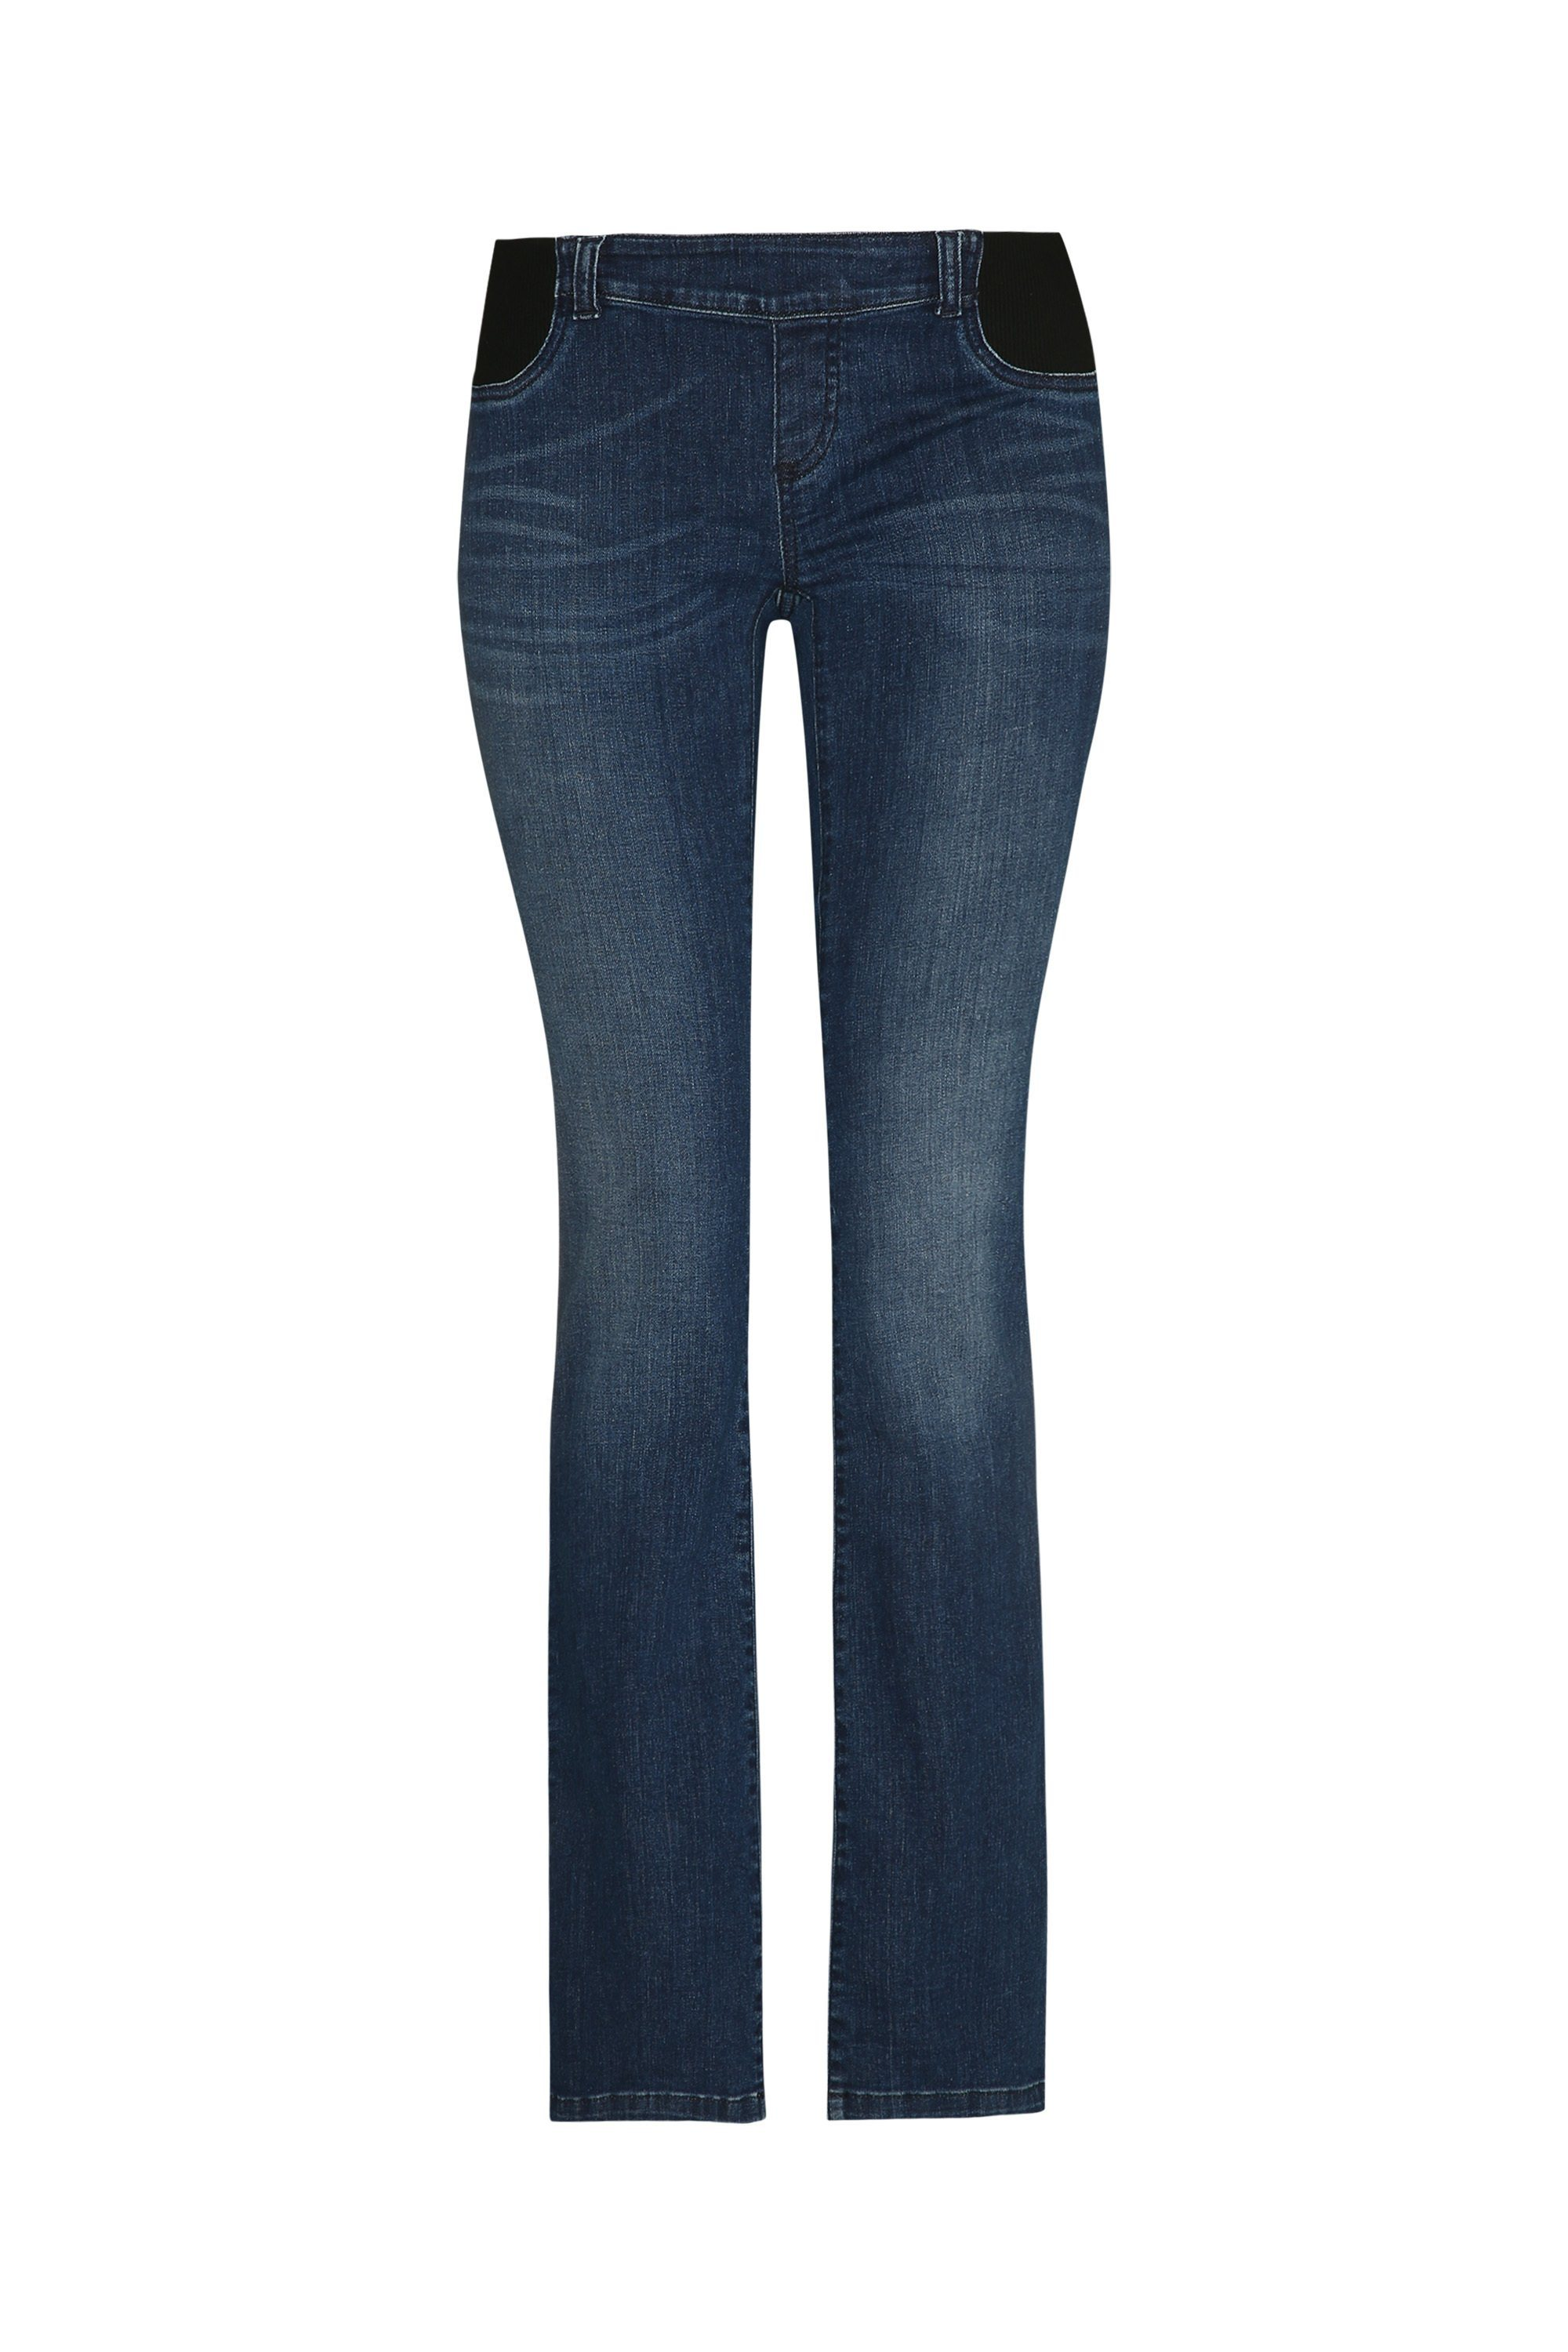 BELLYBUTTON Jeans Alia boot cut, low pocket belly